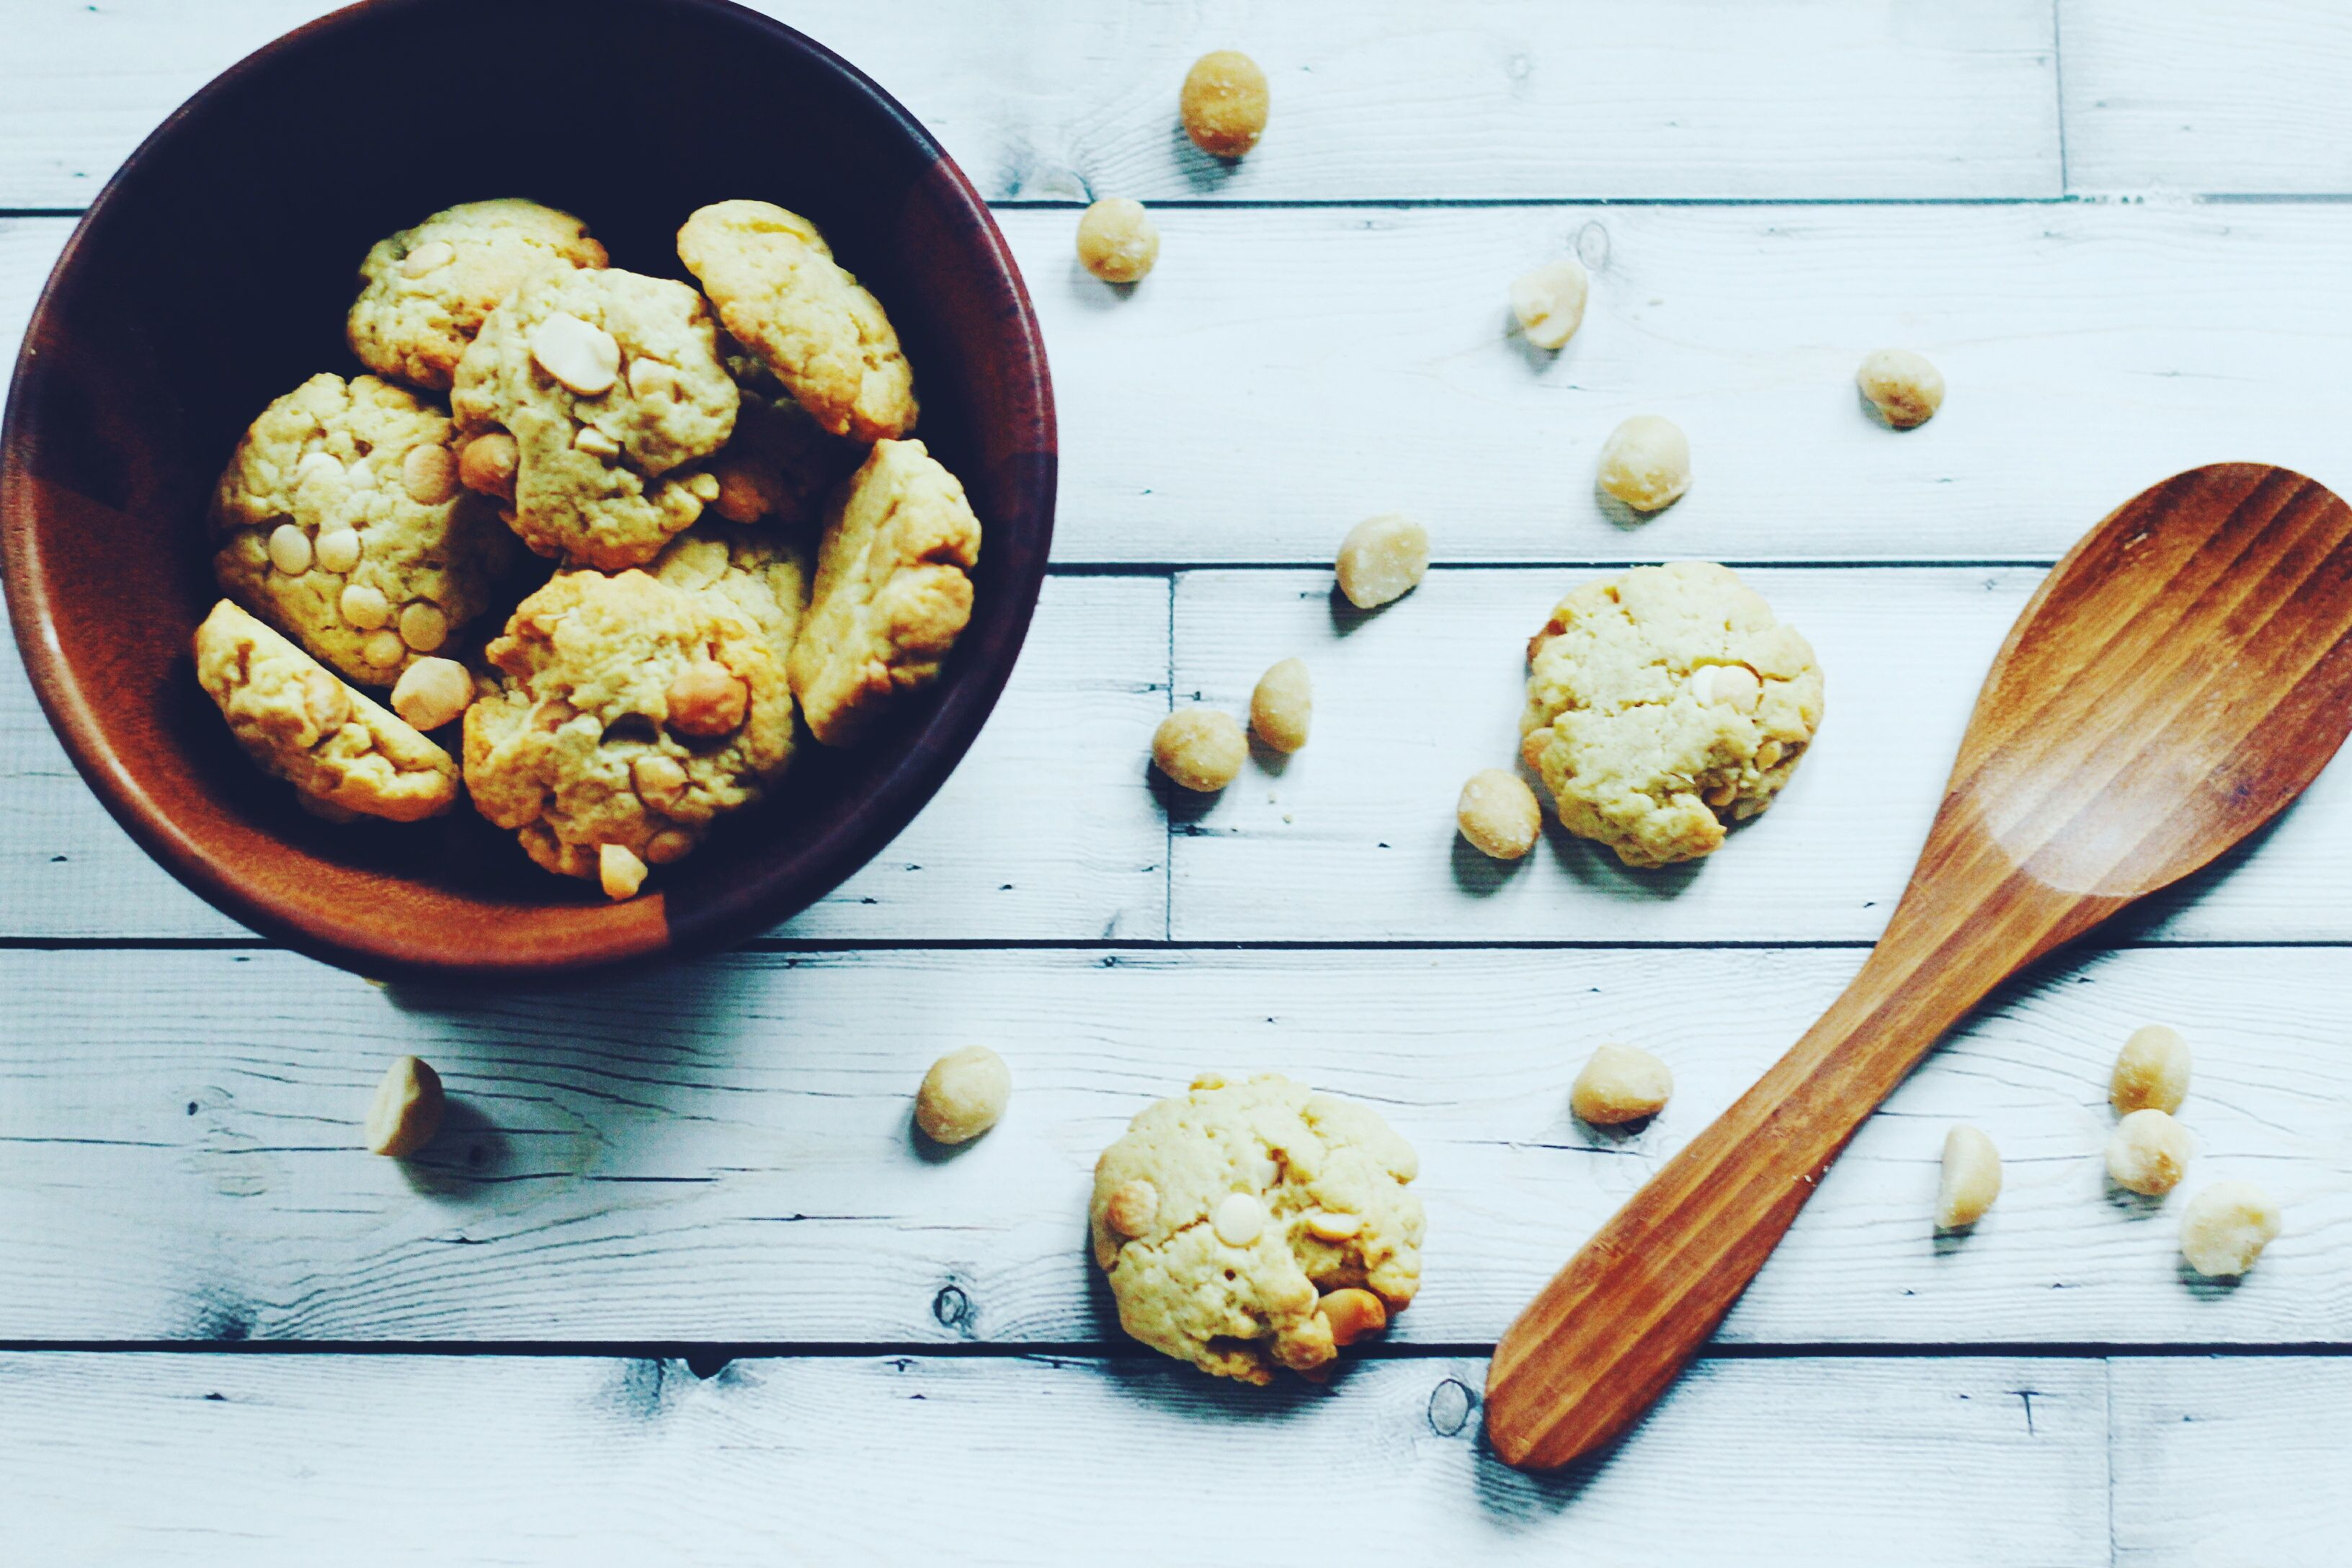 white chocolate macadamia cookies - Powered by @ultimaterecipe